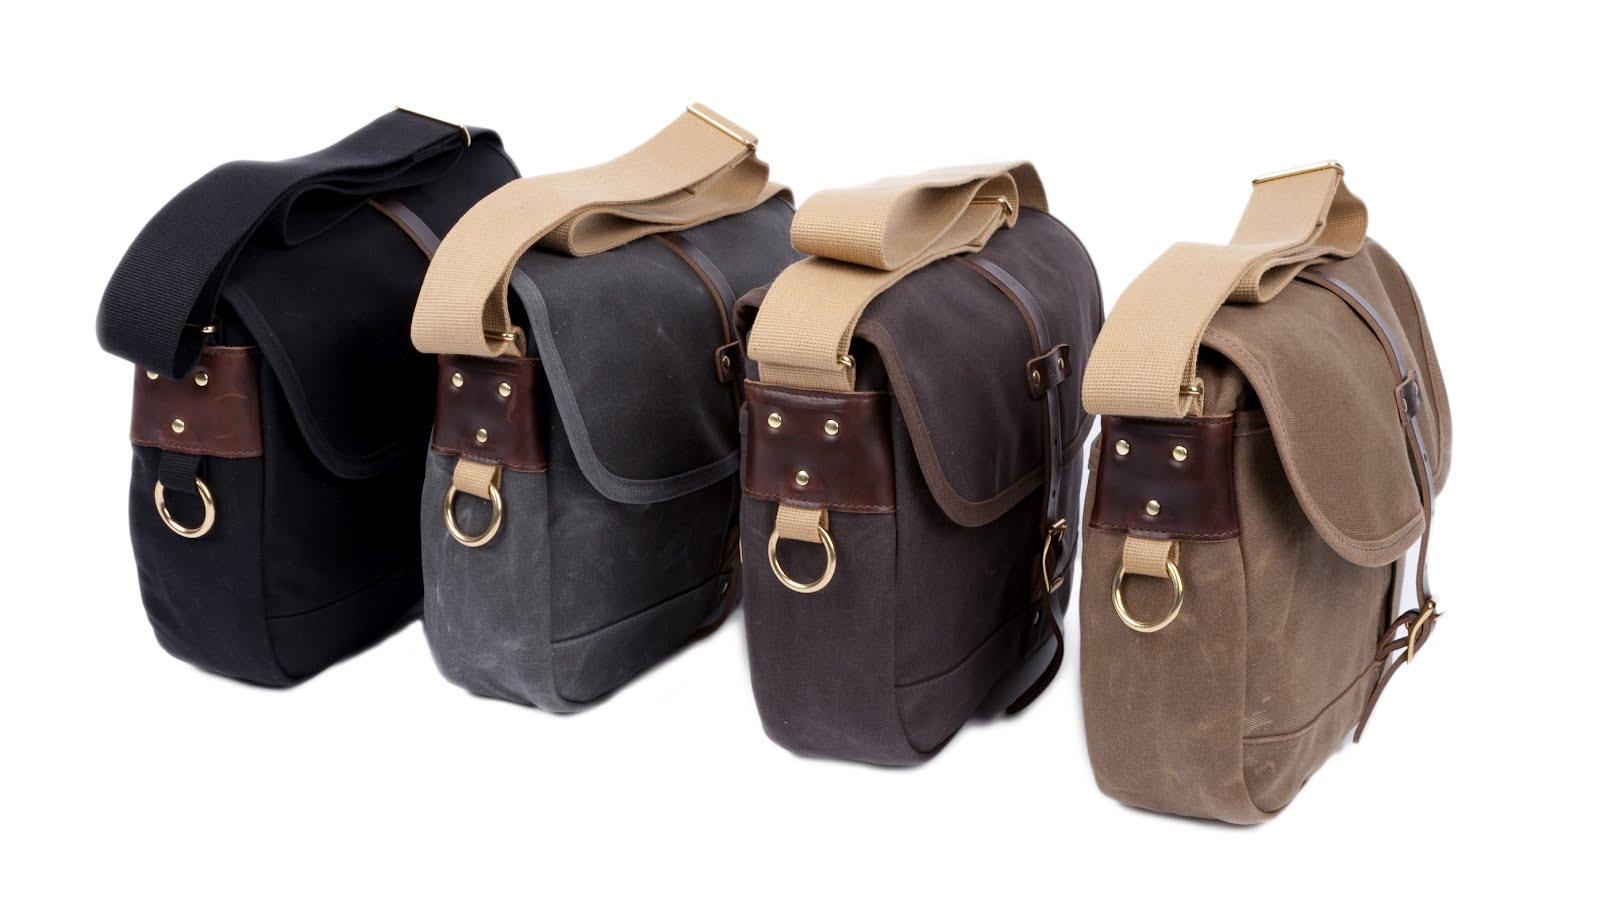 Family Of Bags